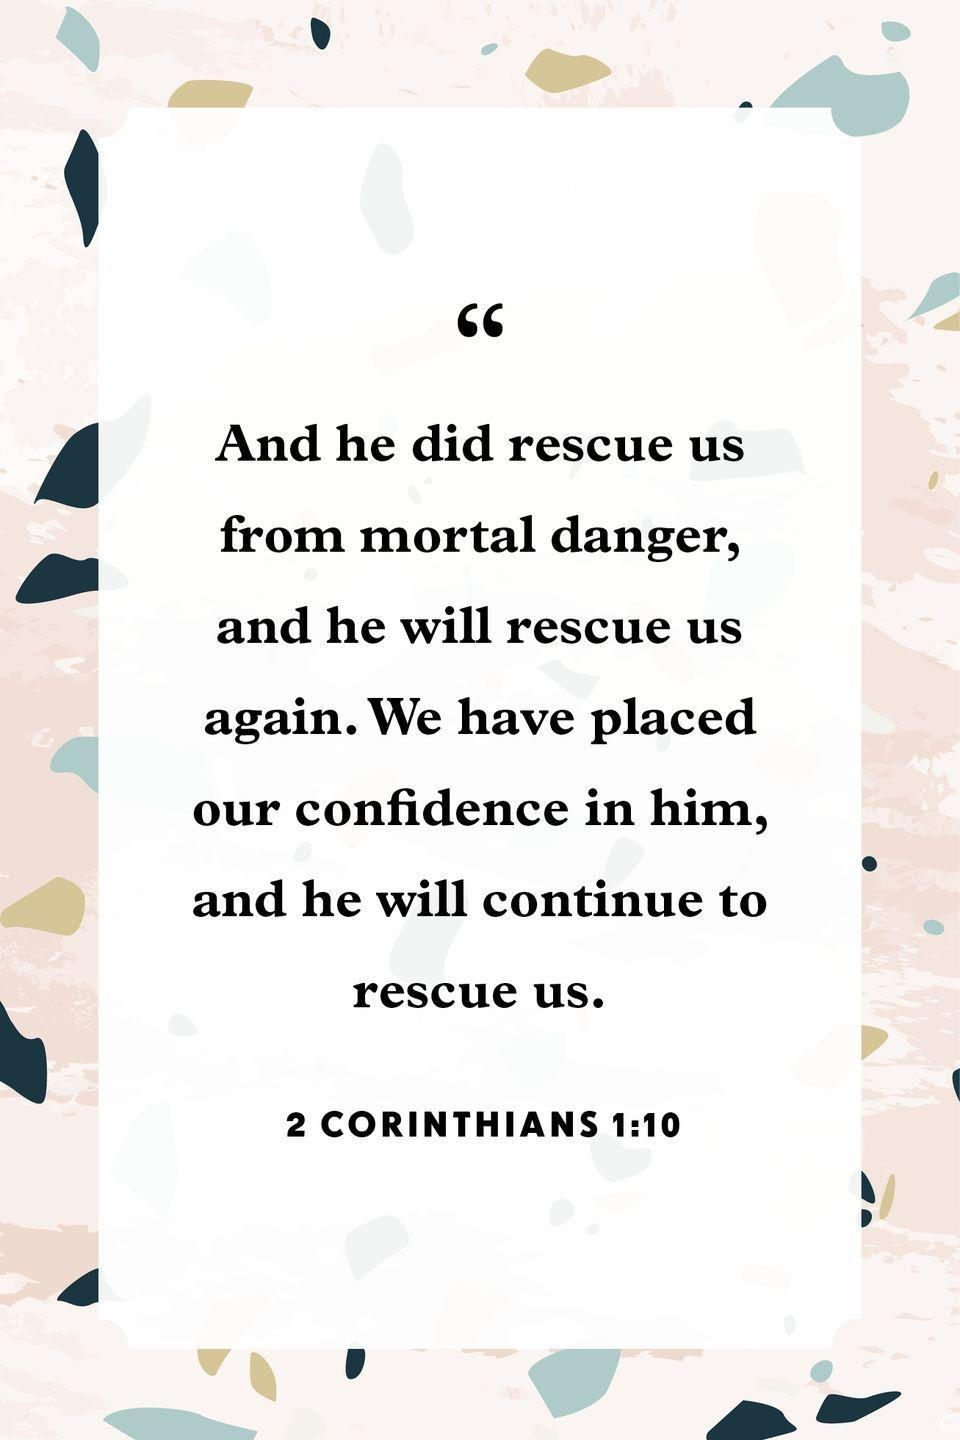 "<p>""And he did rescue us from mortal danger, and he will rescue us again. We have placed our confidence in him, and he will continue to rescue us.""</p>"